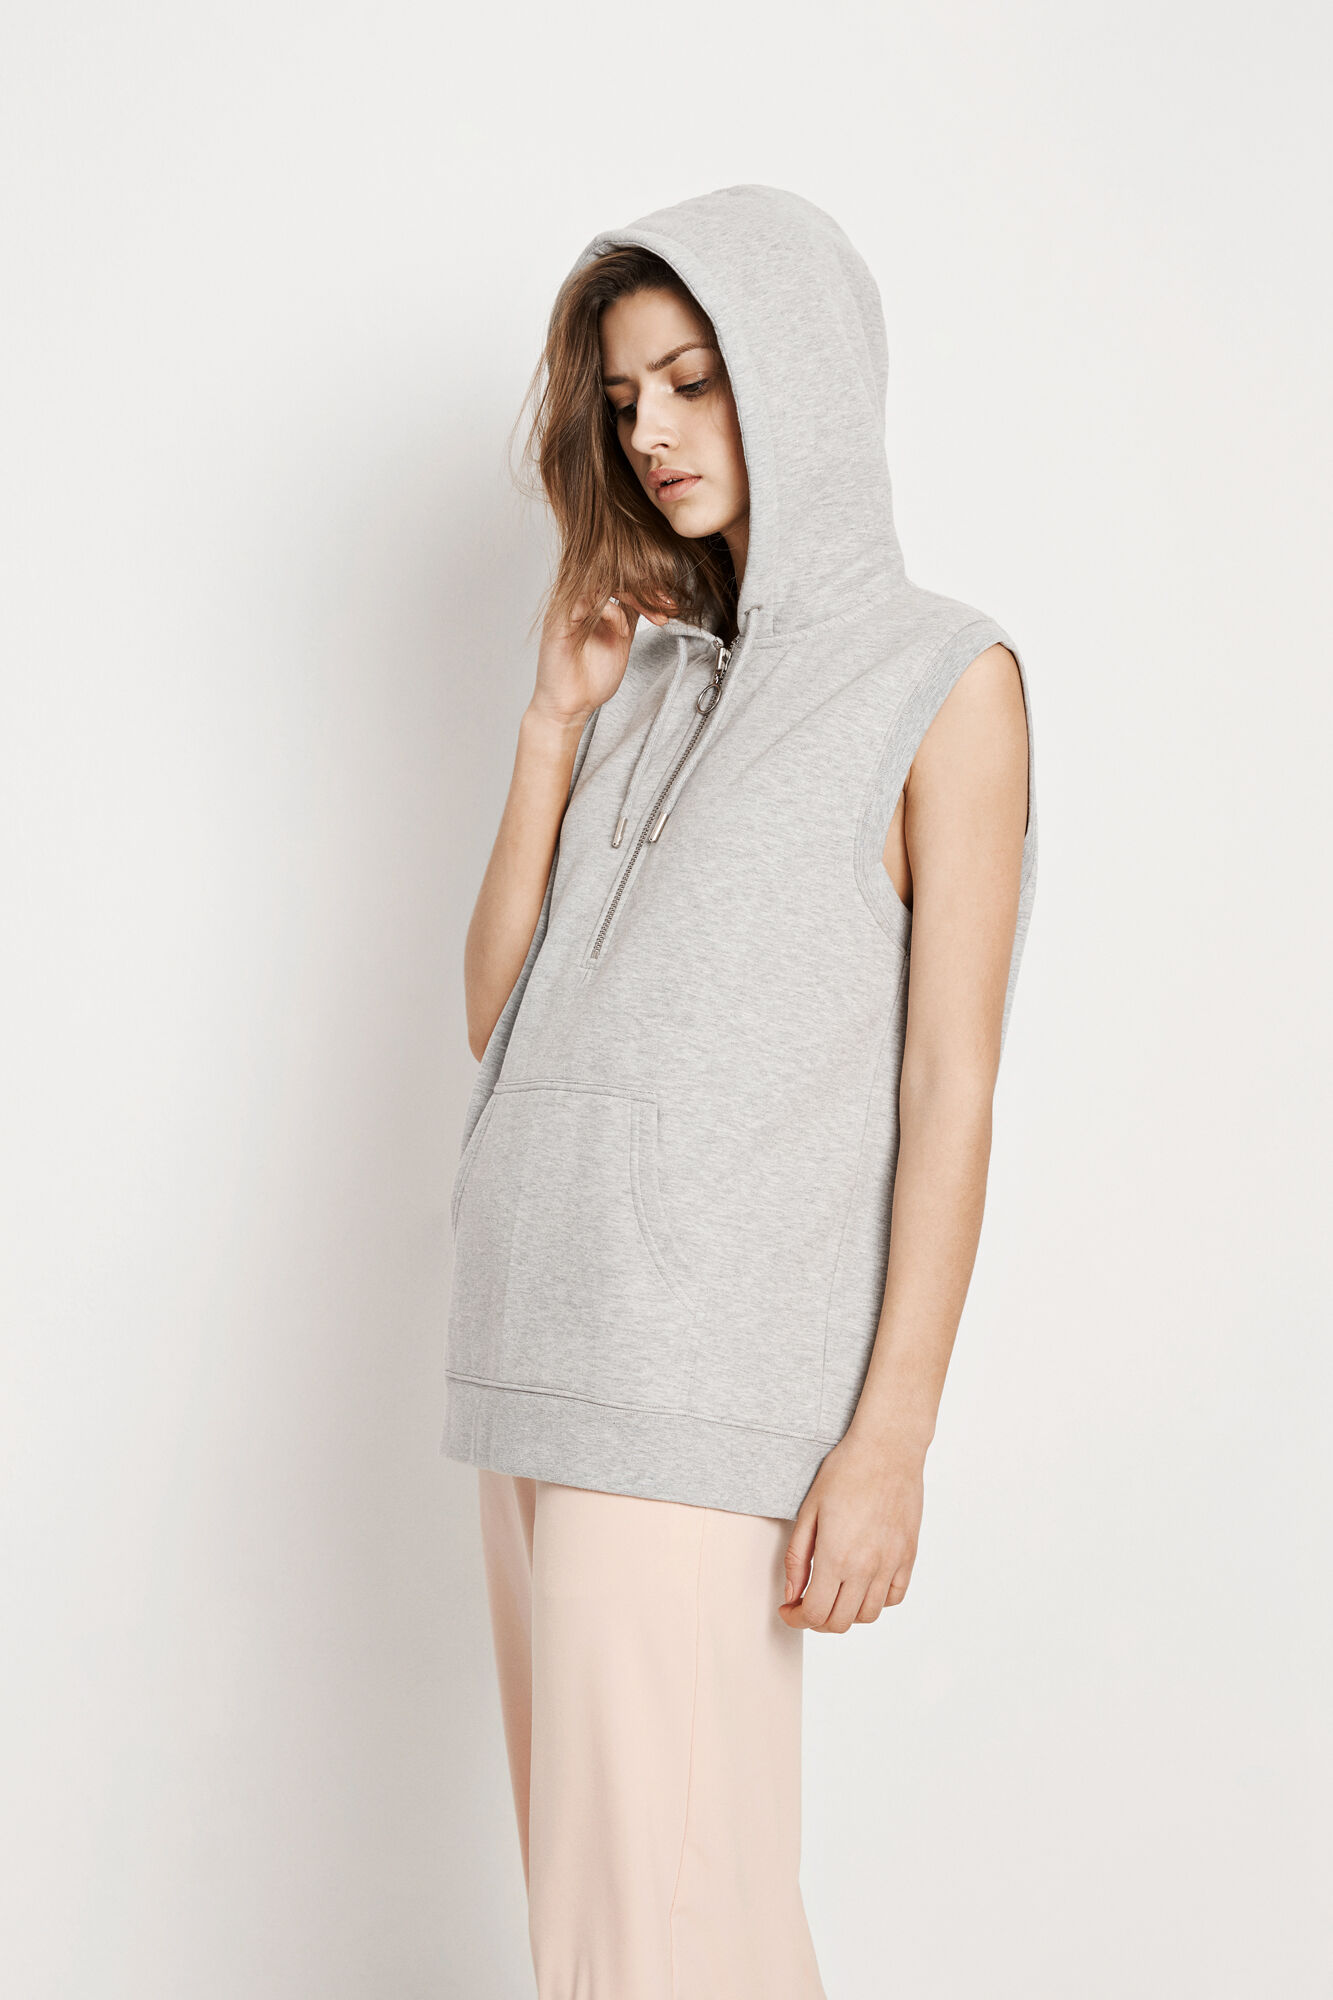 ENMOUNTAIN SL SWEAT 5899, GREY MEL.